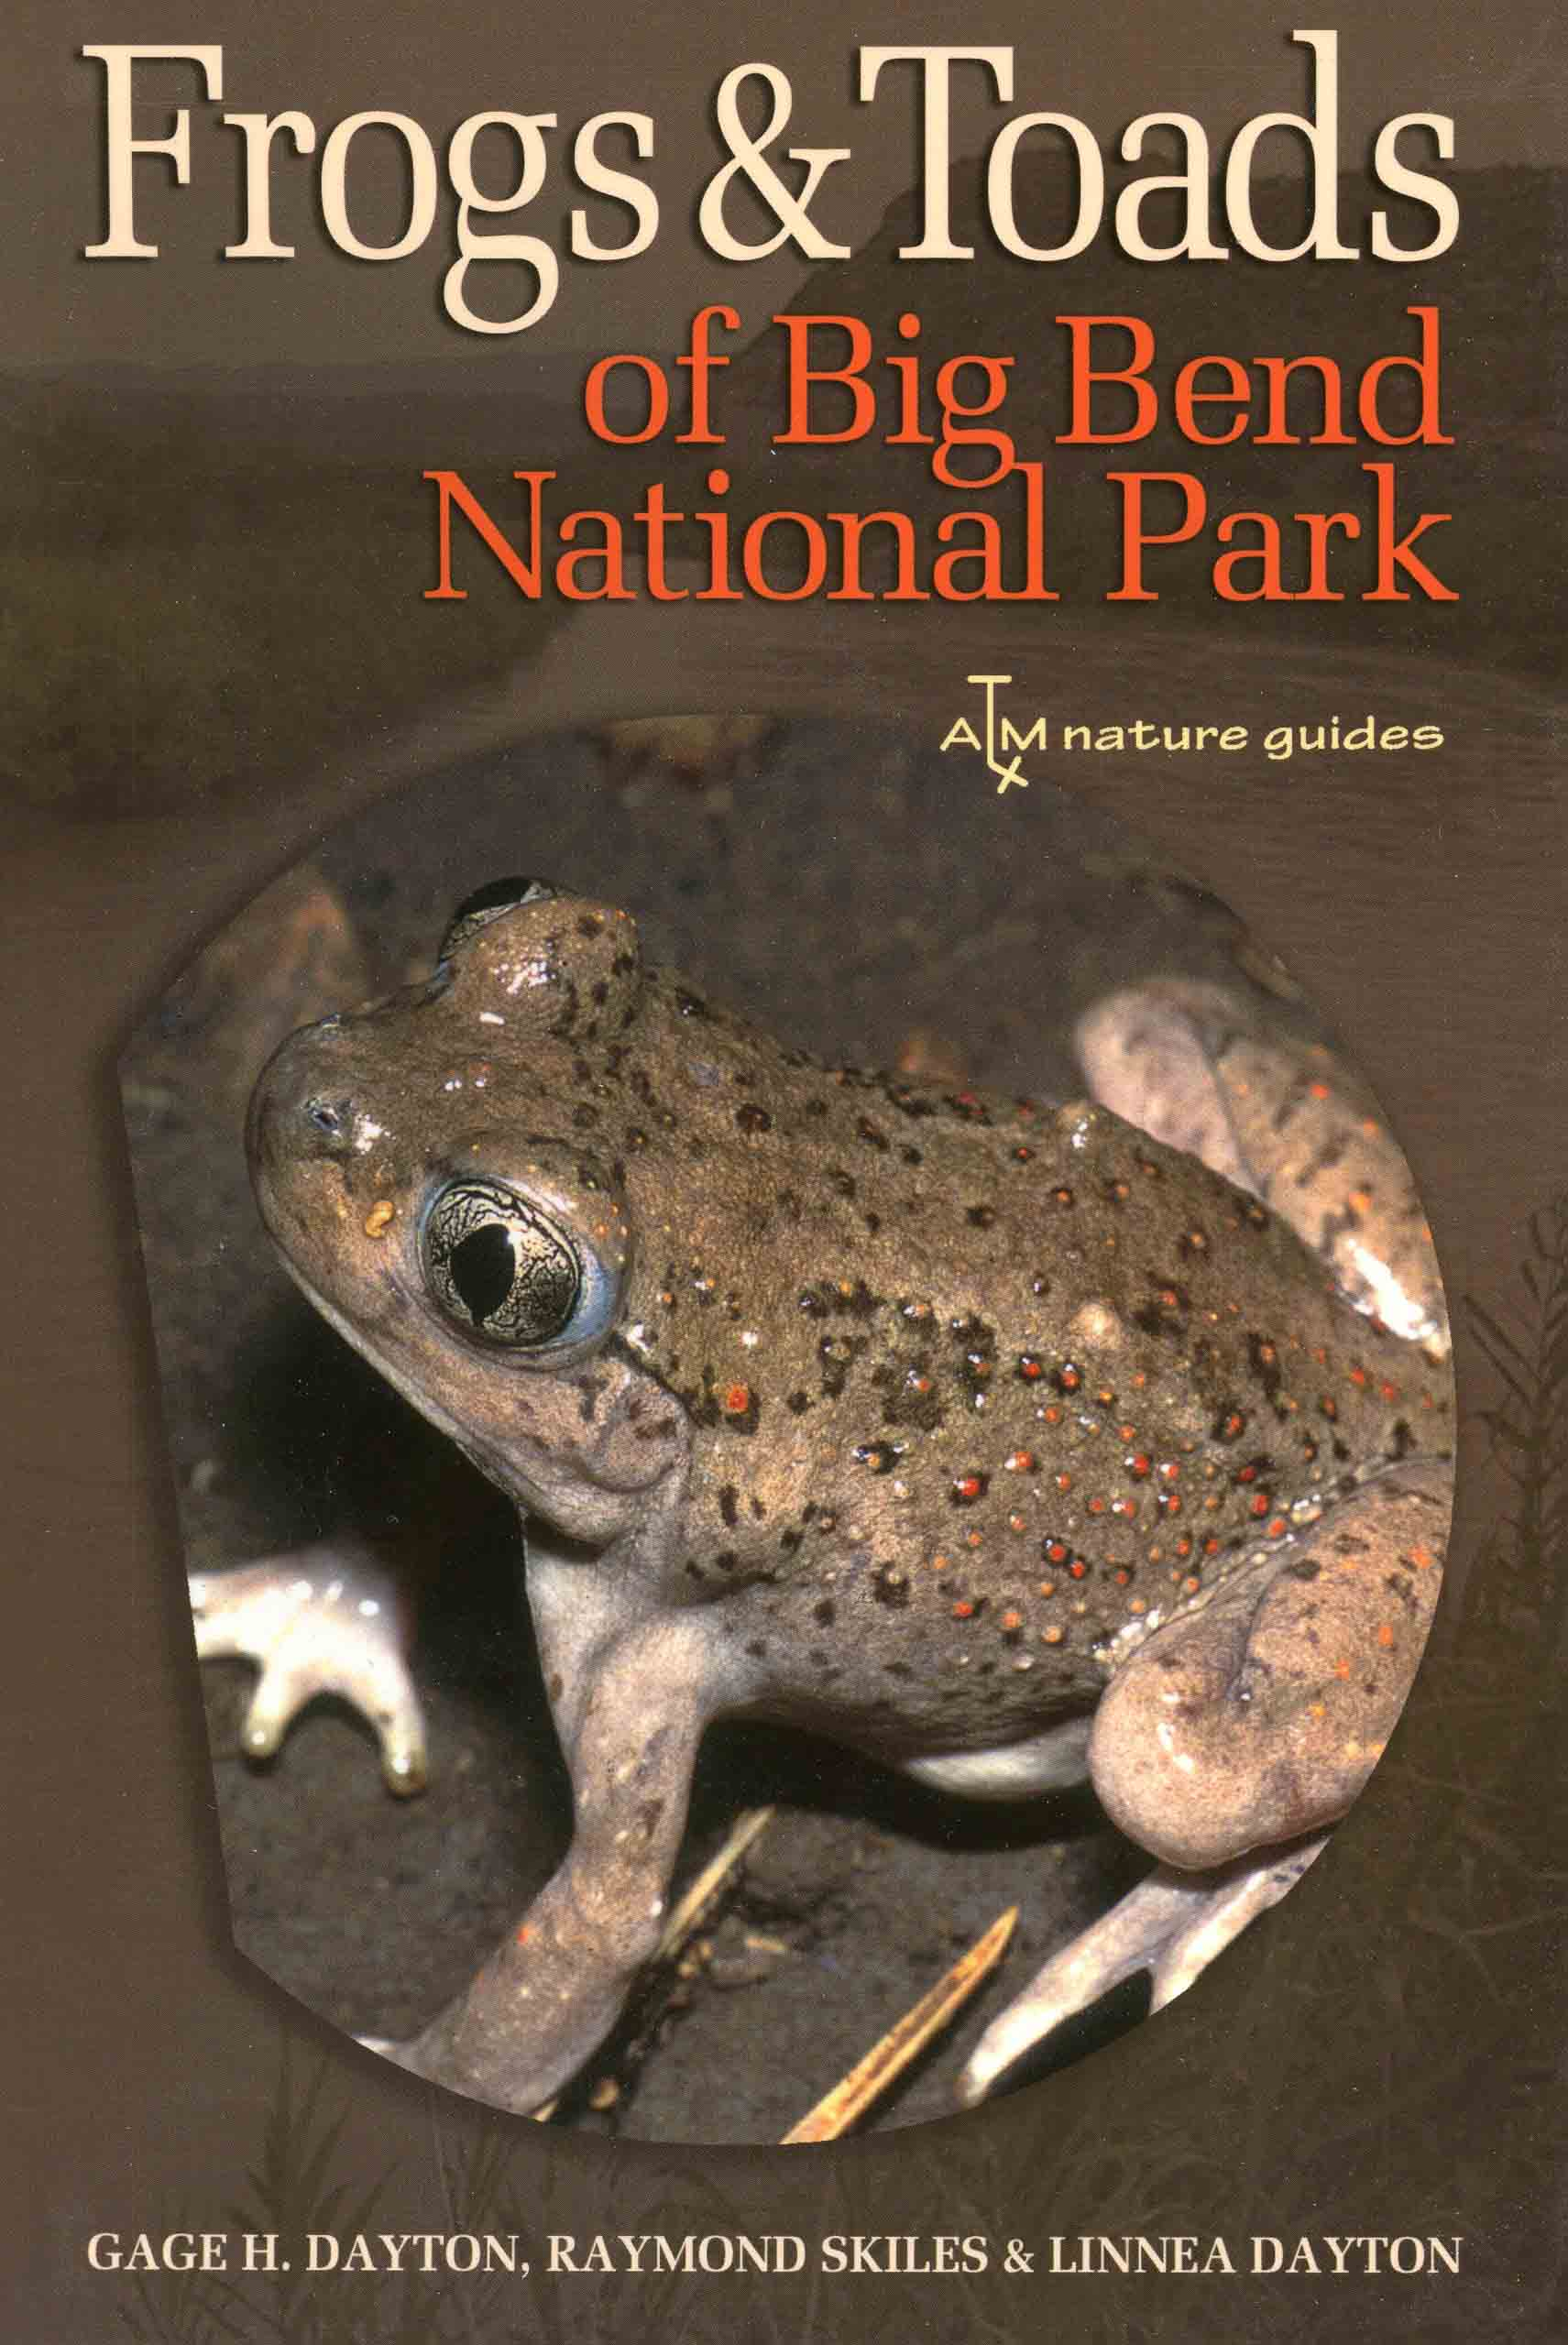 Image for Frogs & Toads of Big Bend National Park,